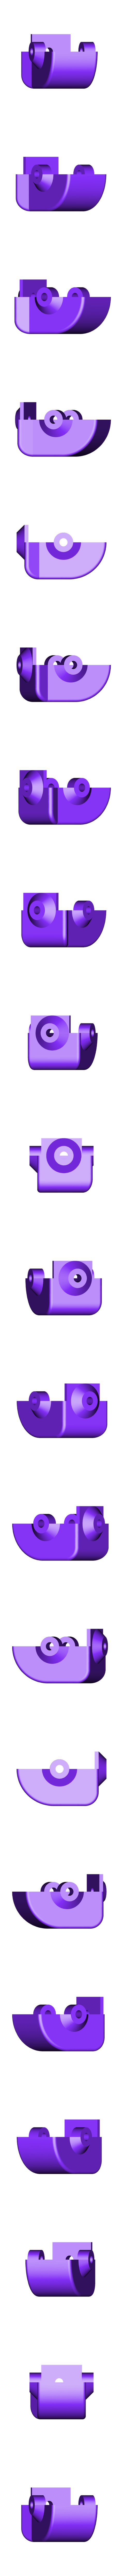 Case.stl Download free STL file Differential Gears • Object to 3D print, morrisblue